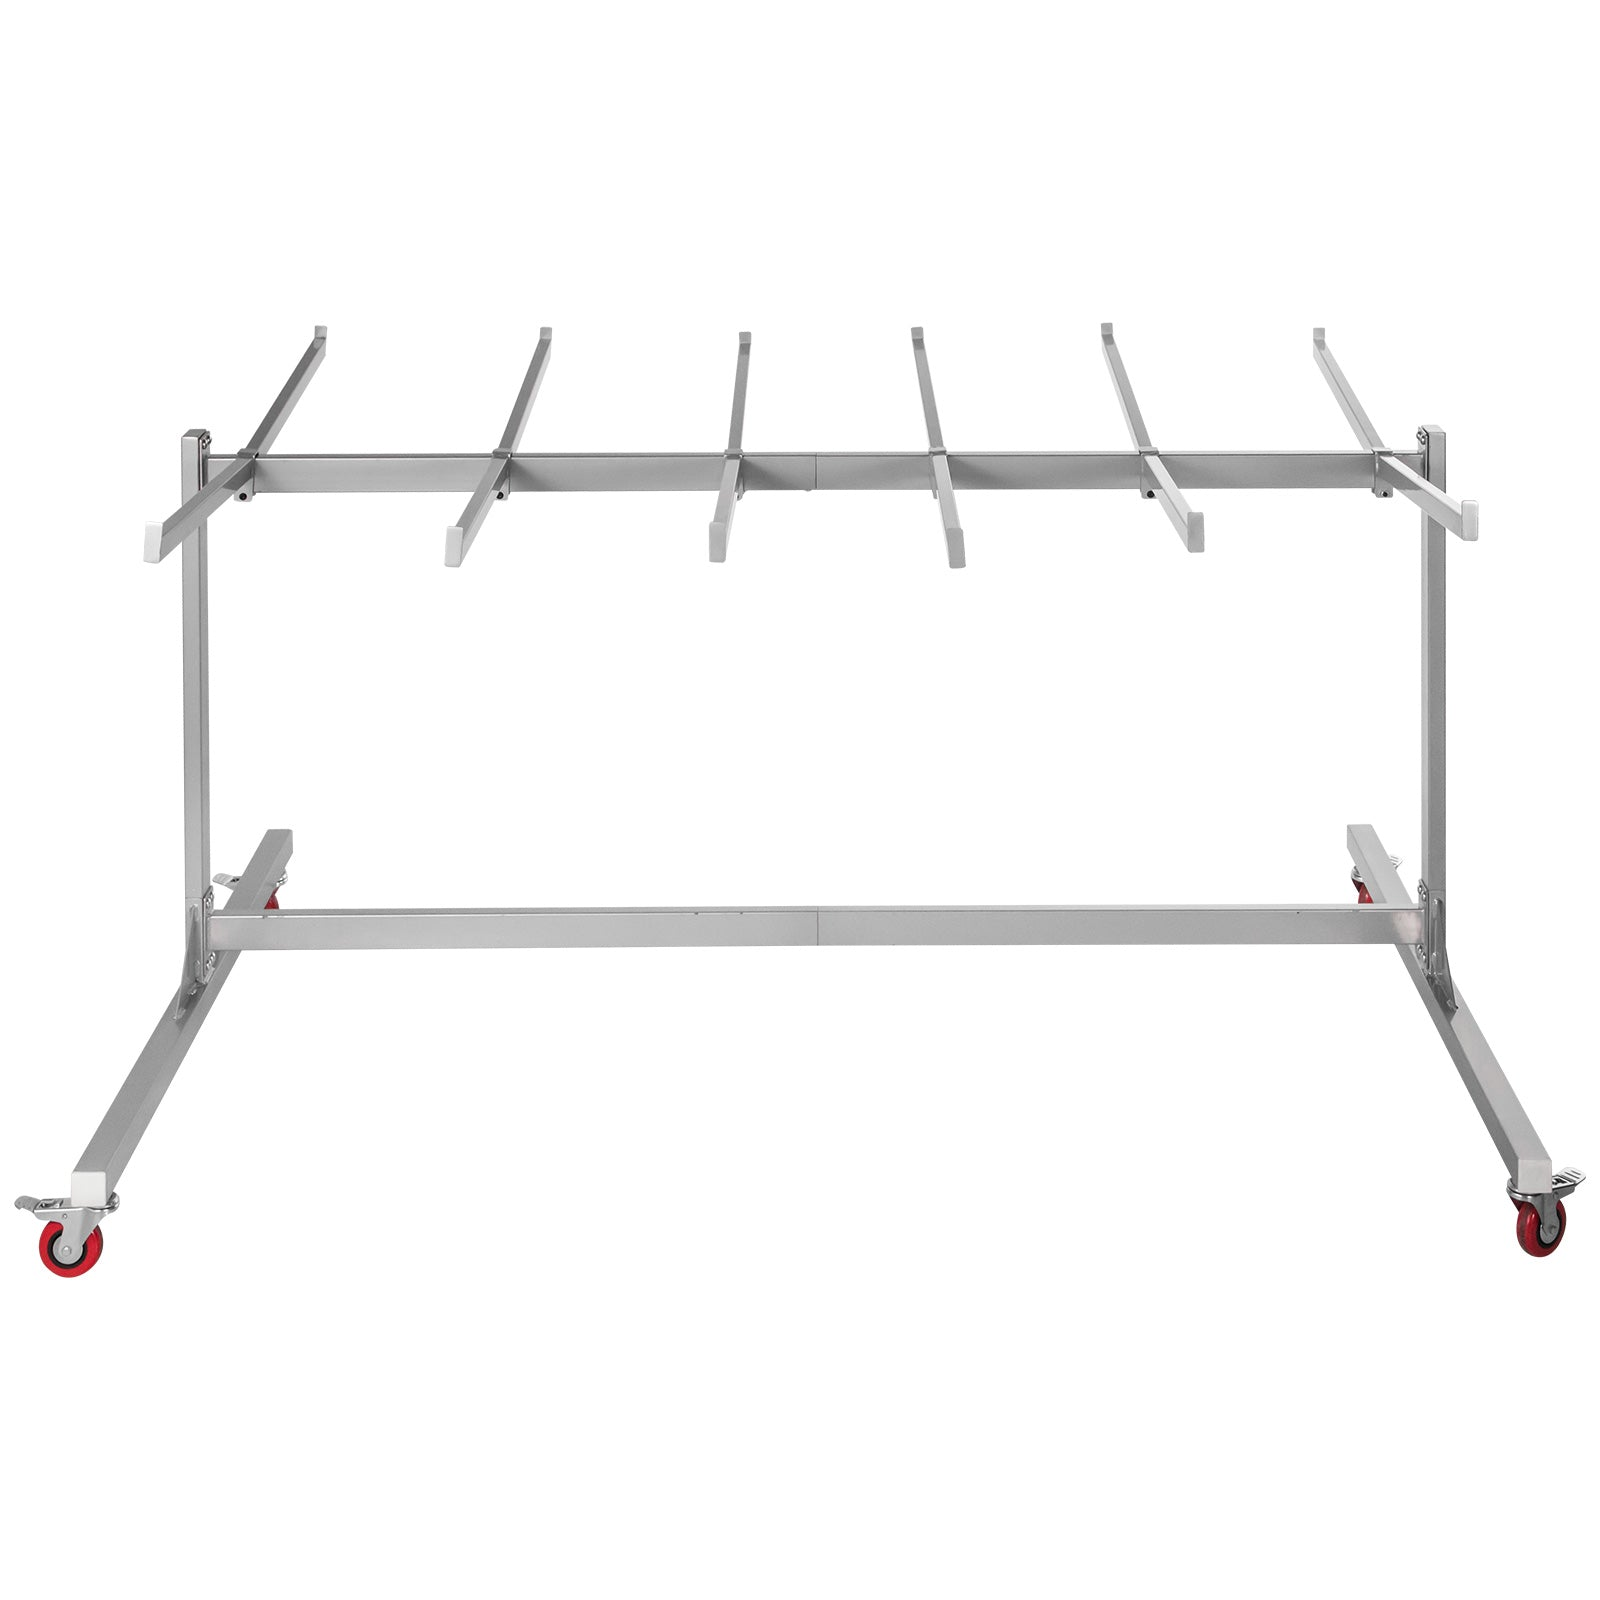 Folding Chair Cart Folding Chair Rack 529lbs Chair Rack For 60 Chairs Storage